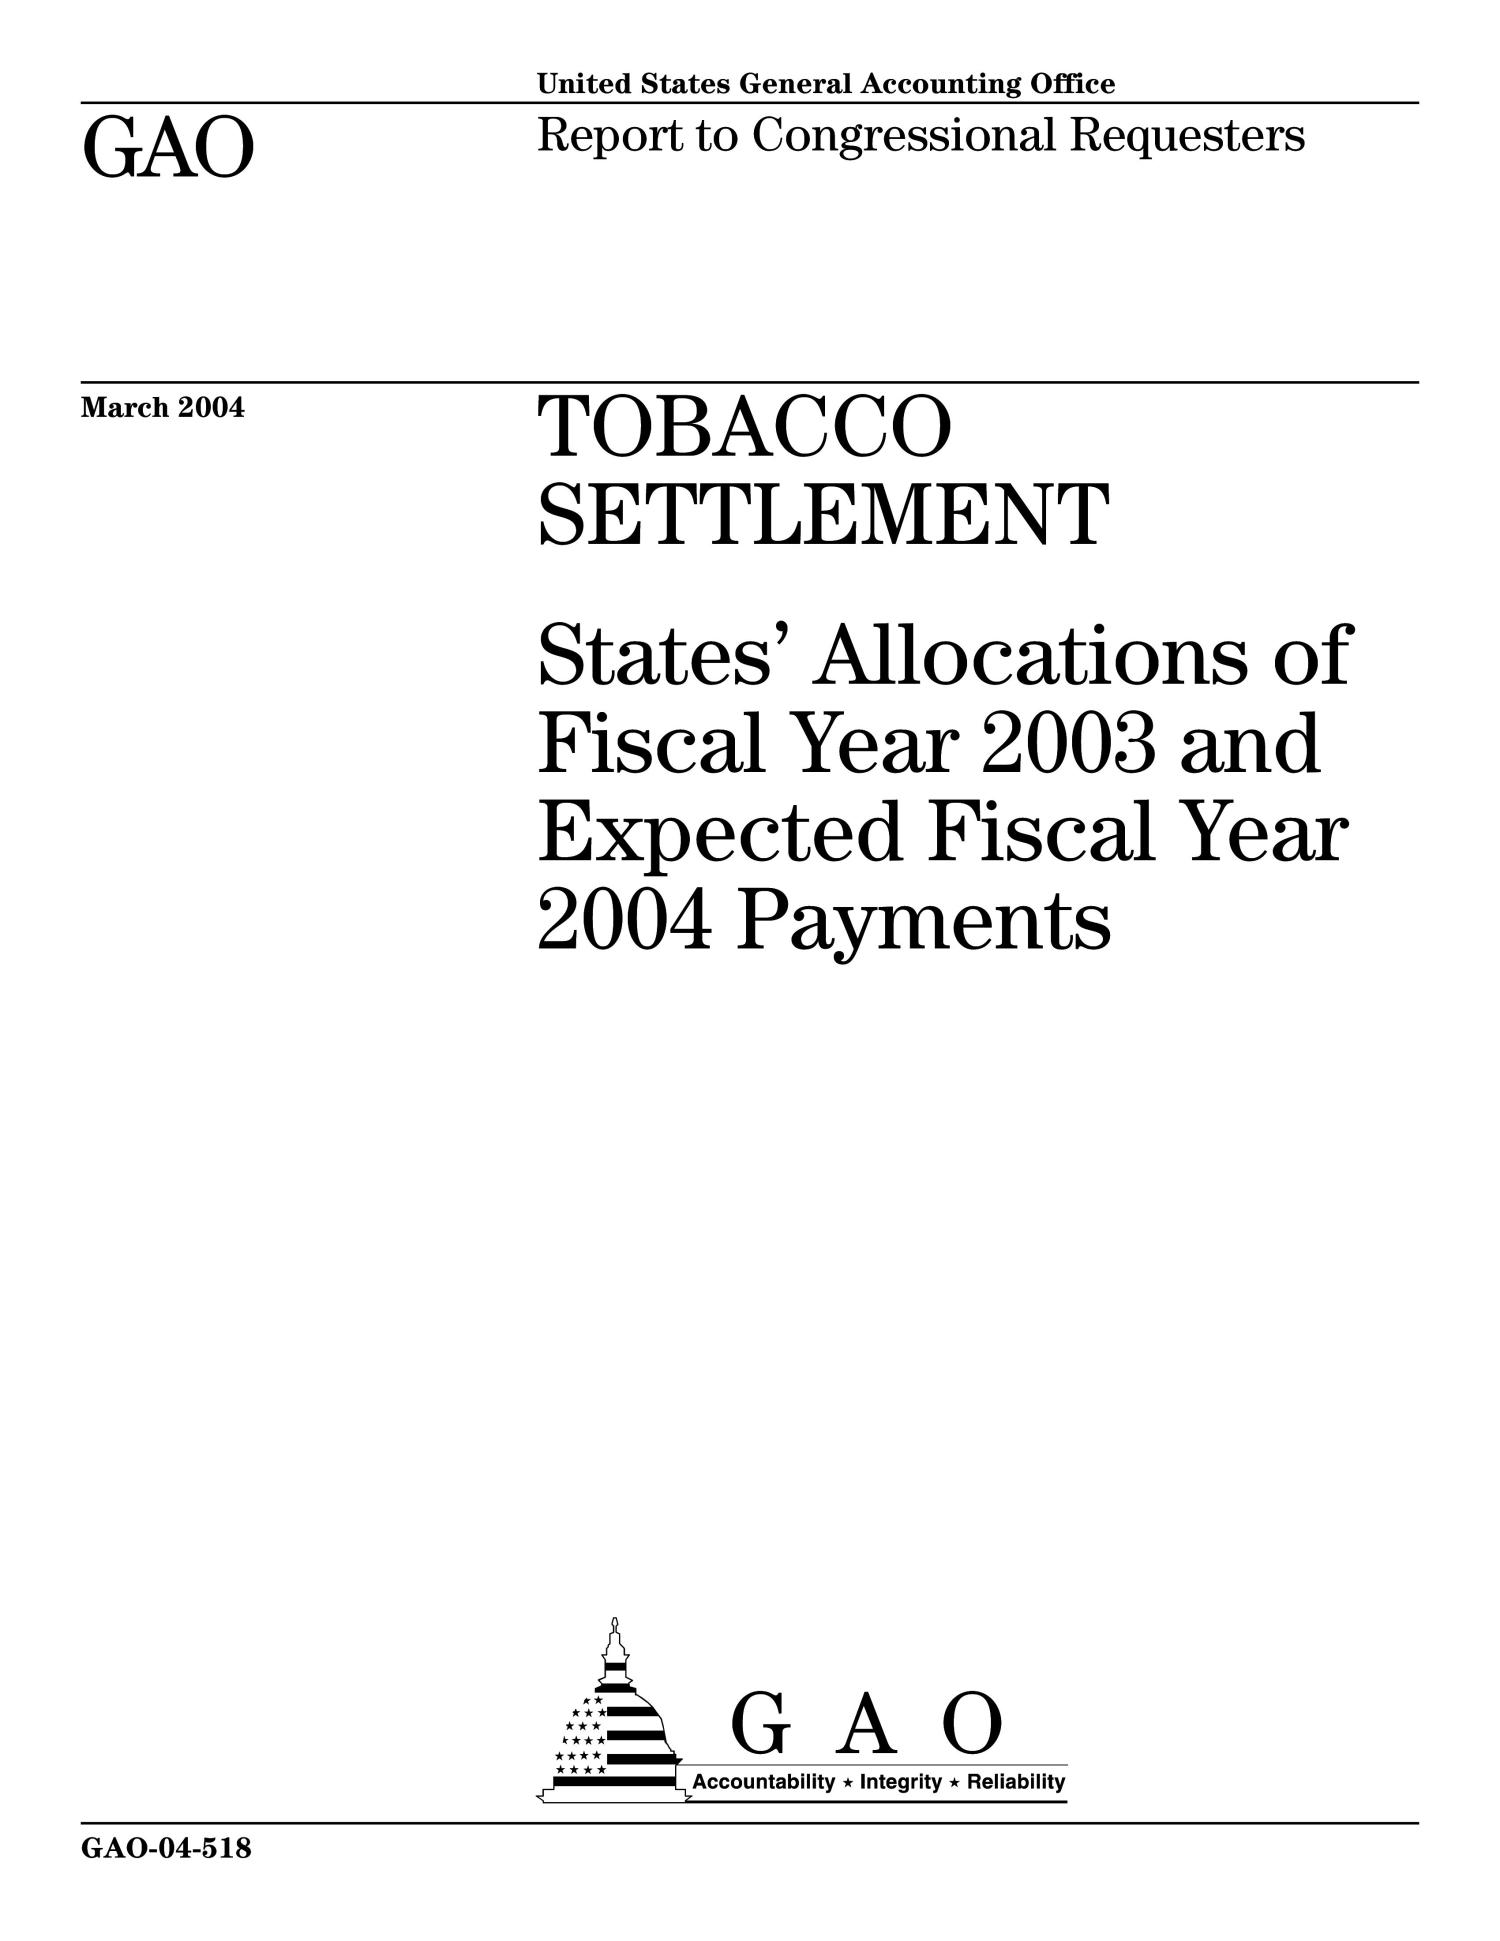 Tobacco Settlement: States' Allocations of Fiscal Year 2003 and Expected Fiscal Year 2004 Payments                                                                                                      [Sequence #]: 1 of 81